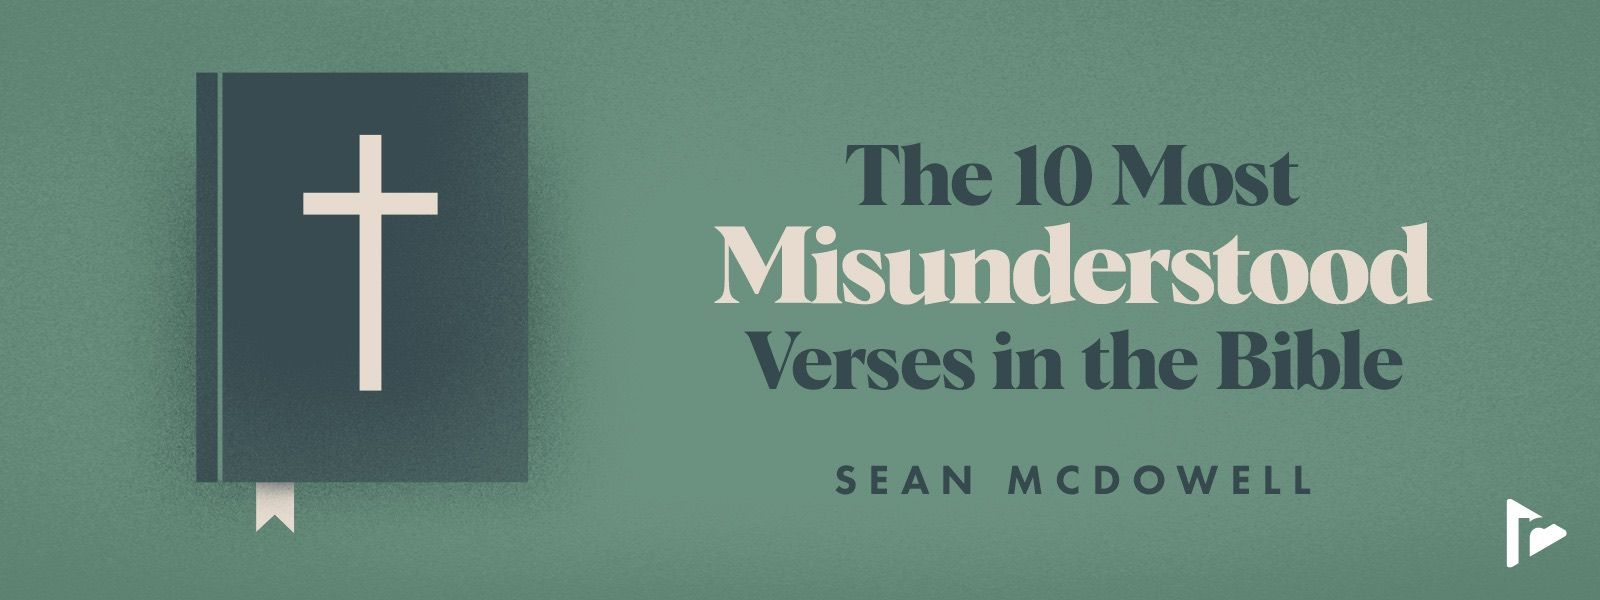 The 10 Most Misunderstood Verses in the Bible